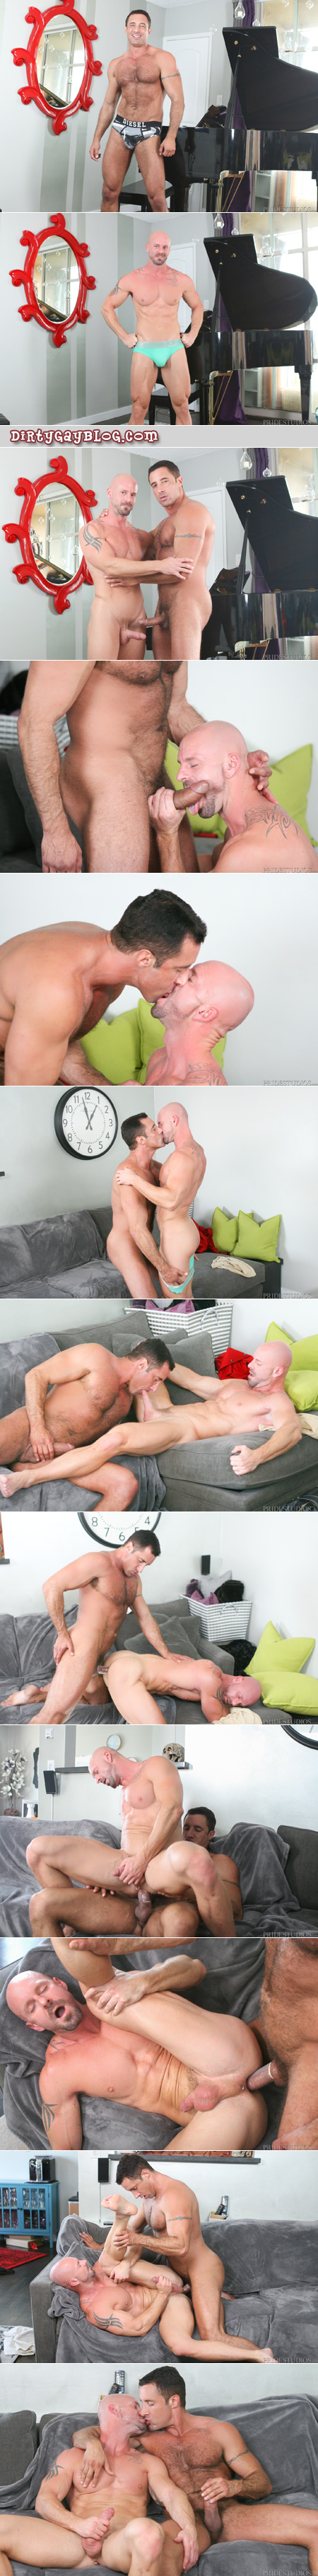 Muscle Daddies fucking and jacking off on the couch together.